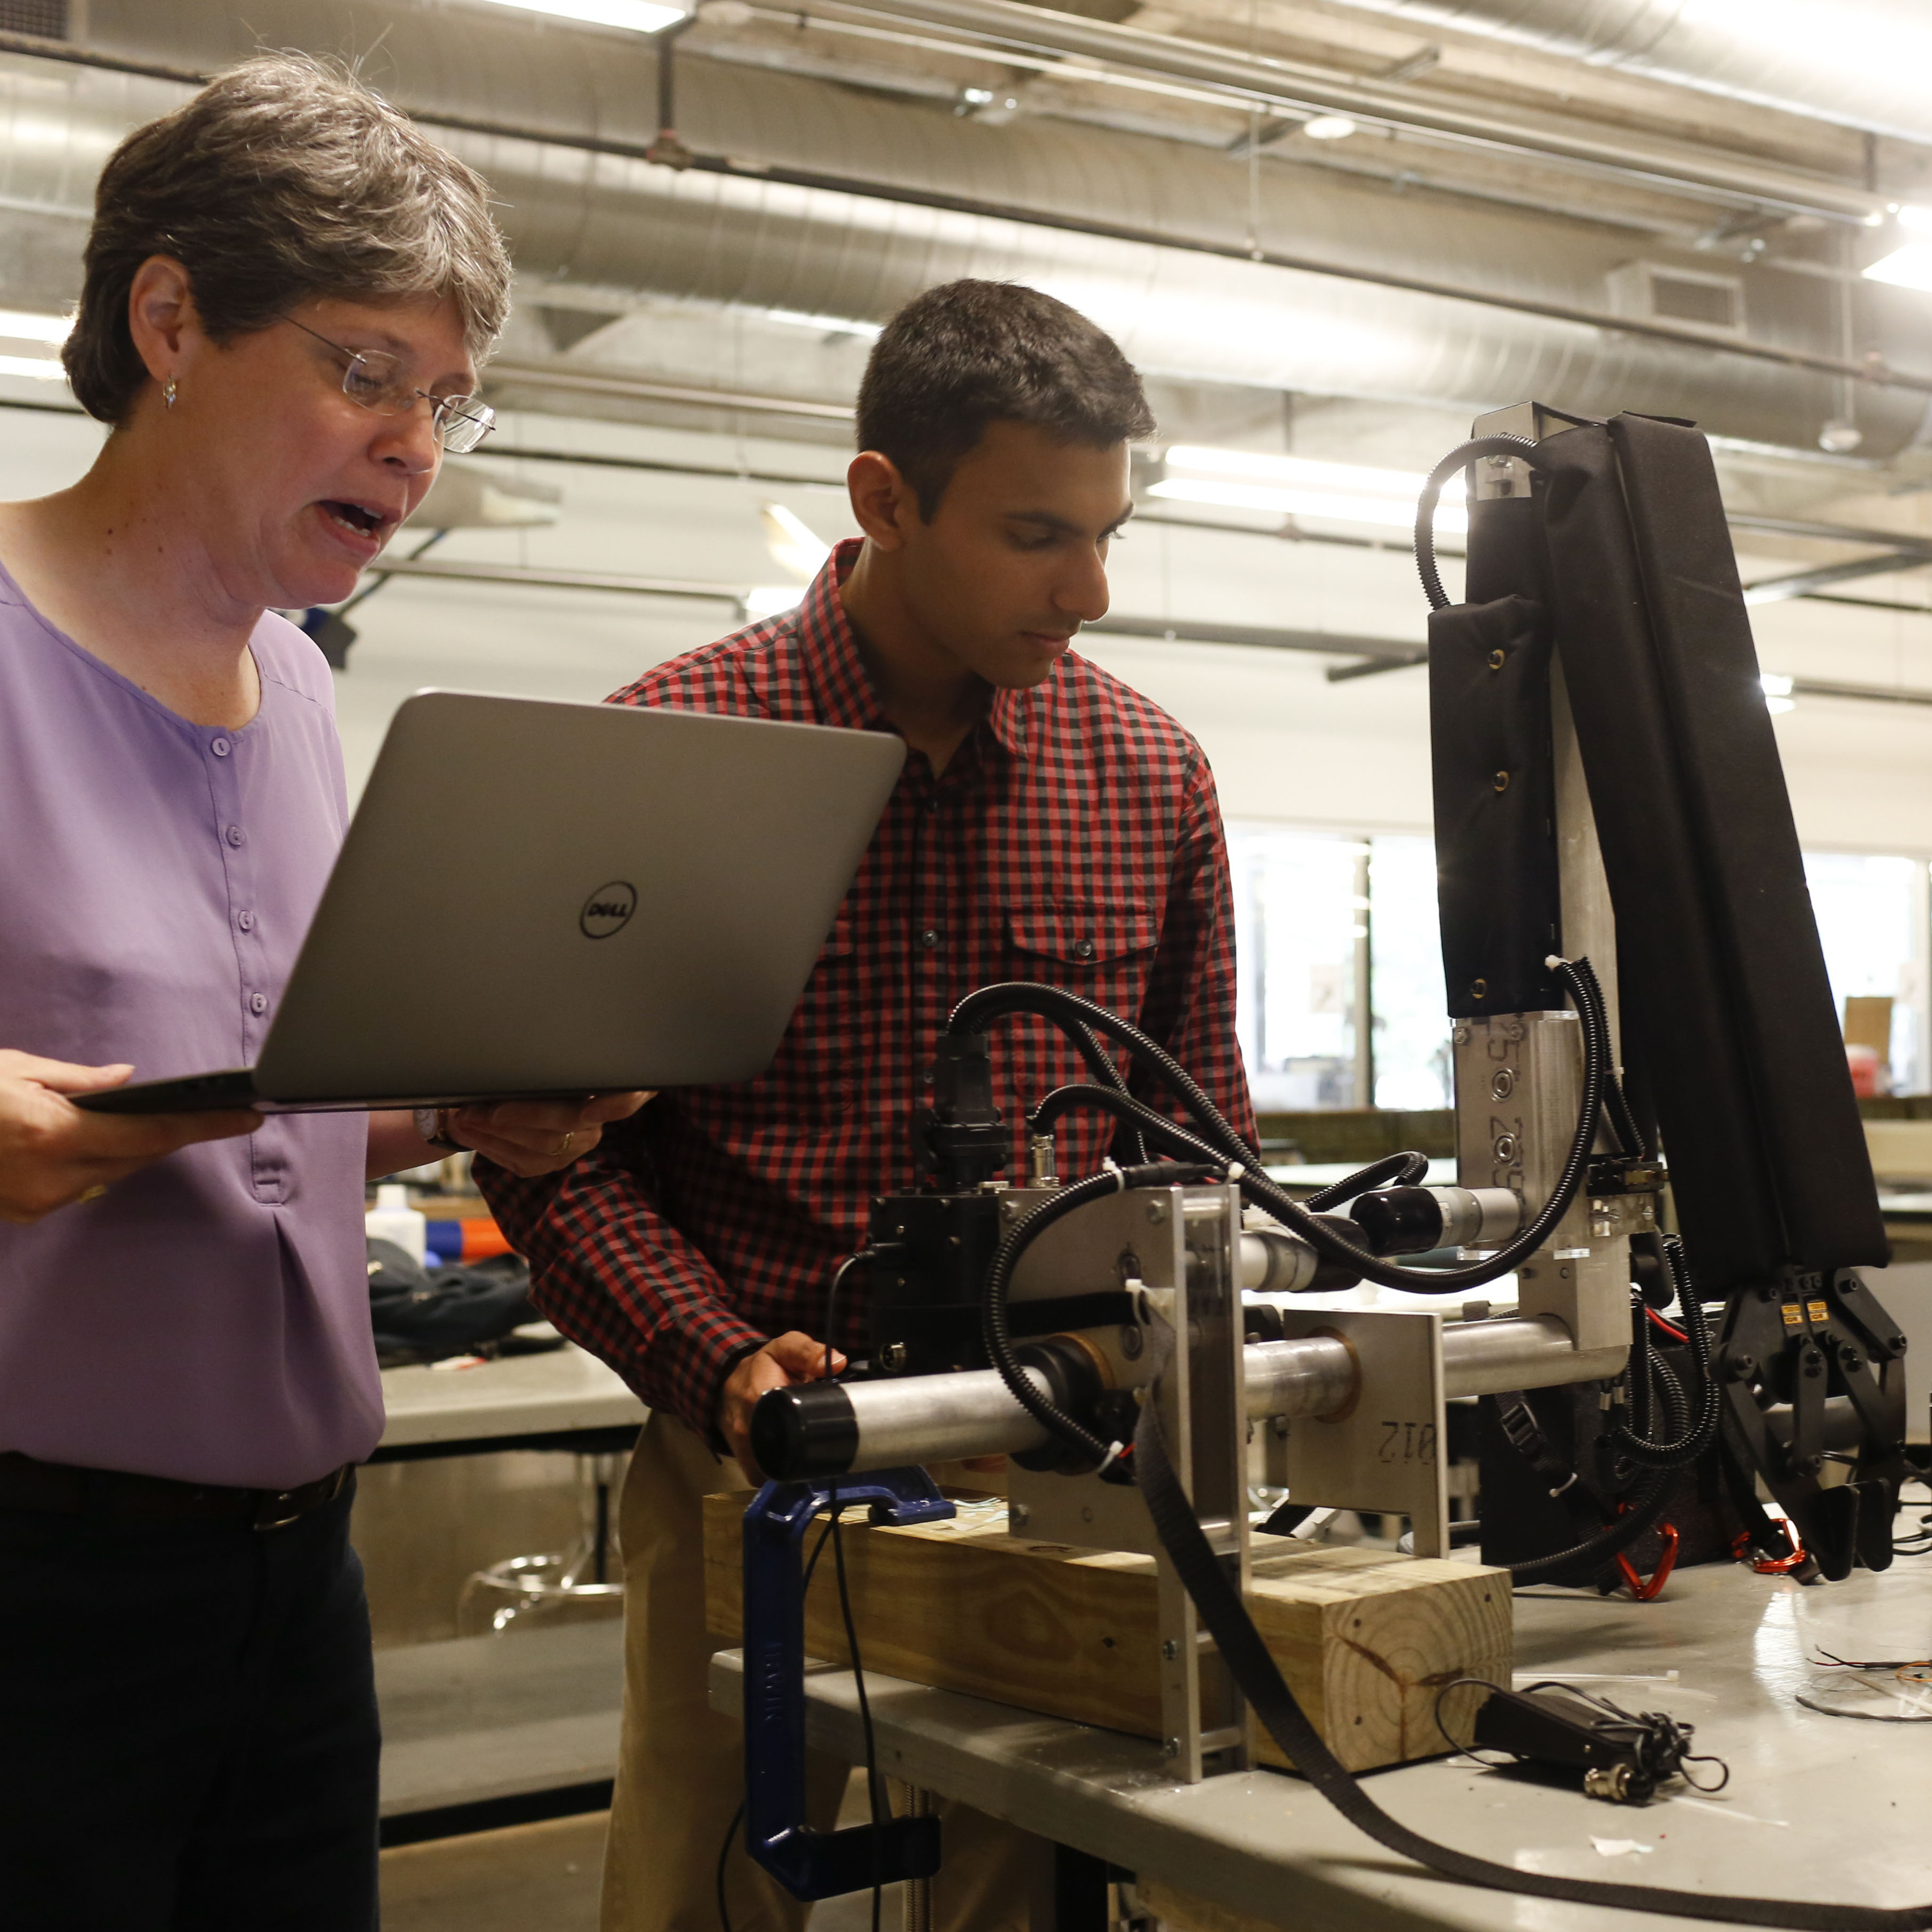 Ann Saterbak, a bioengineering professor at Rice University, reviews a list of improvements that were to be made to a robotic arm by undergraduate bioengineering students Nimish Mital (center) and Matthew Nojoomi.